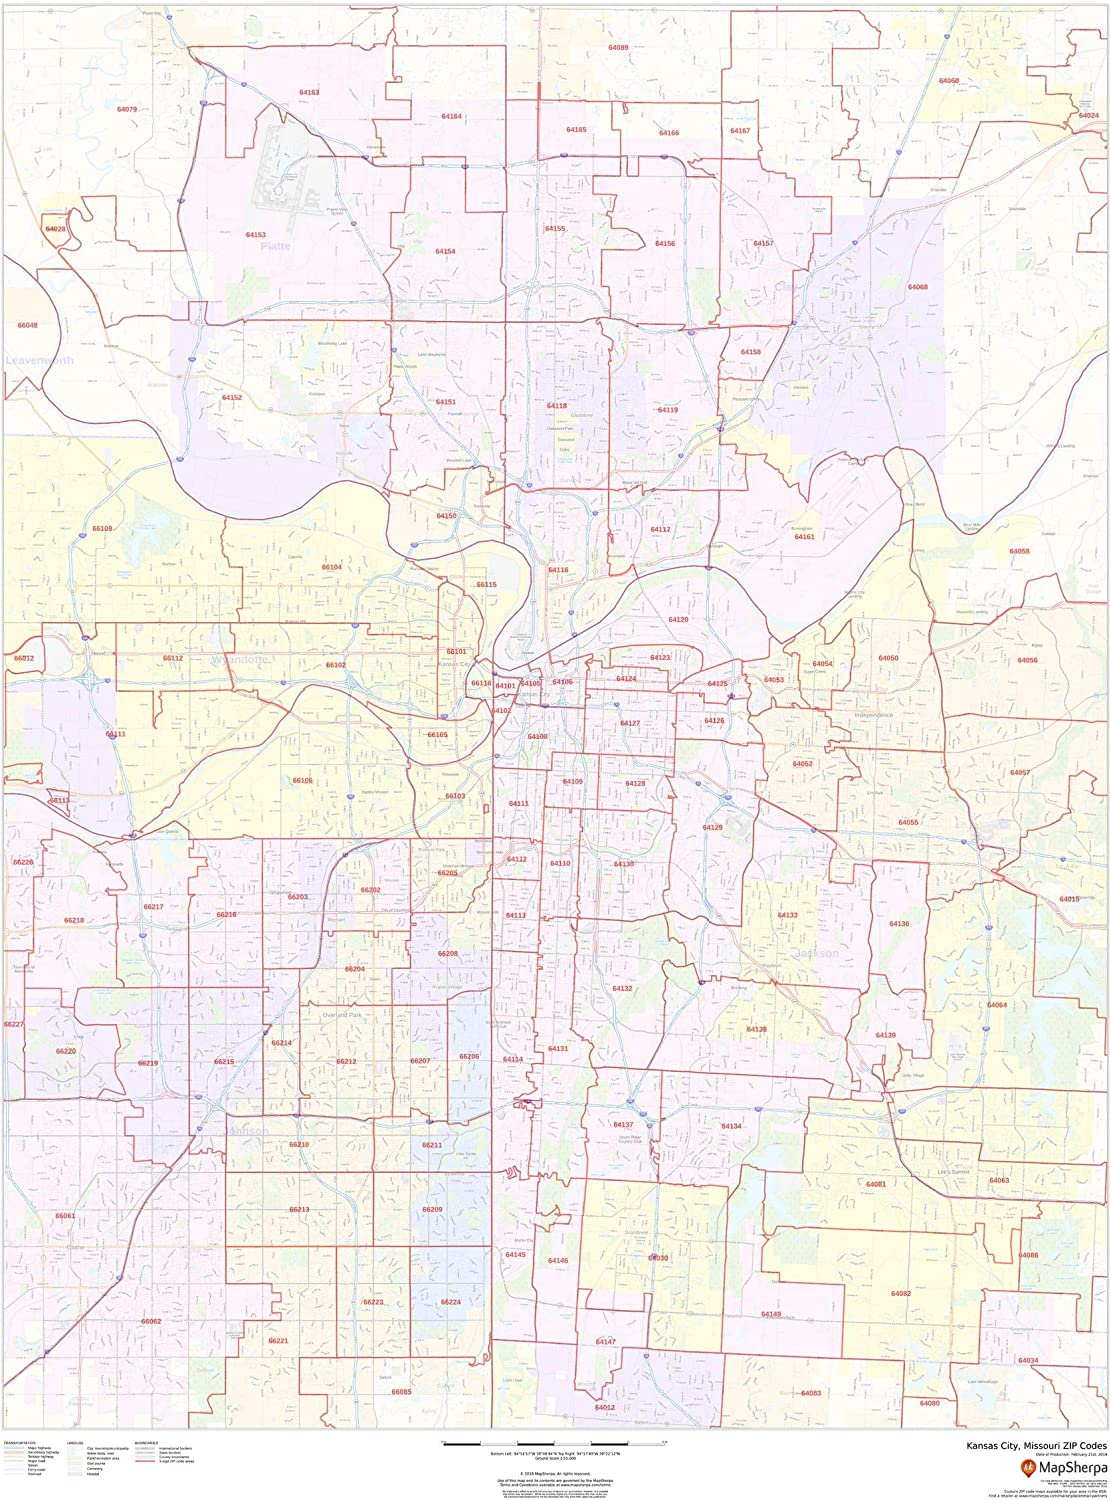 kansas city kansas zip code map Amazon Com Kansas City Missouri Zip Codes 36 X 48 Laminated kansas city kansas zip code map